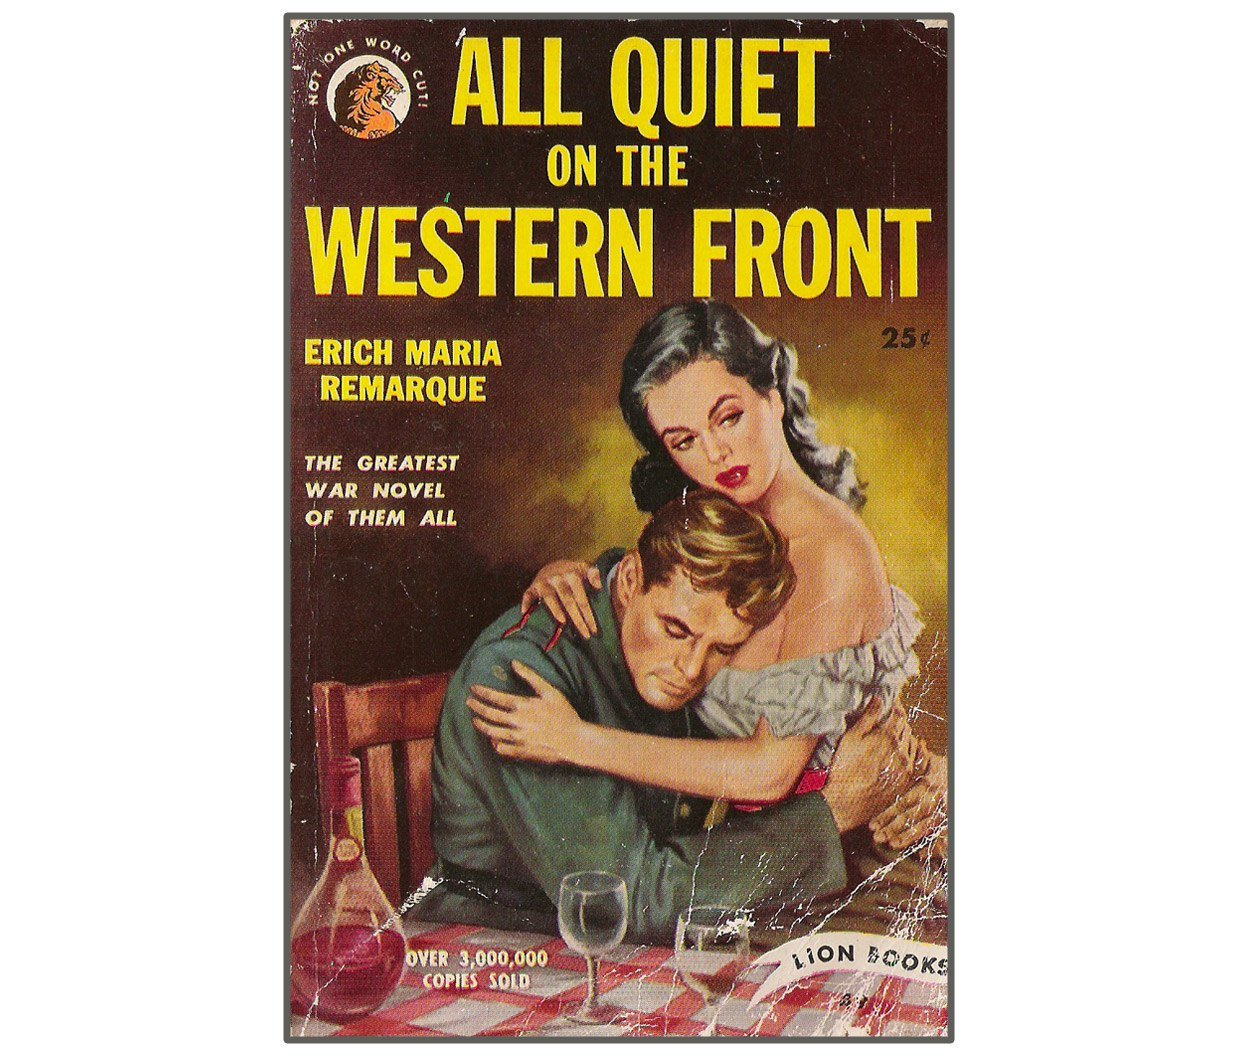 رواية All Quiet on the Western Front للكاتب Erich Maria Remarque